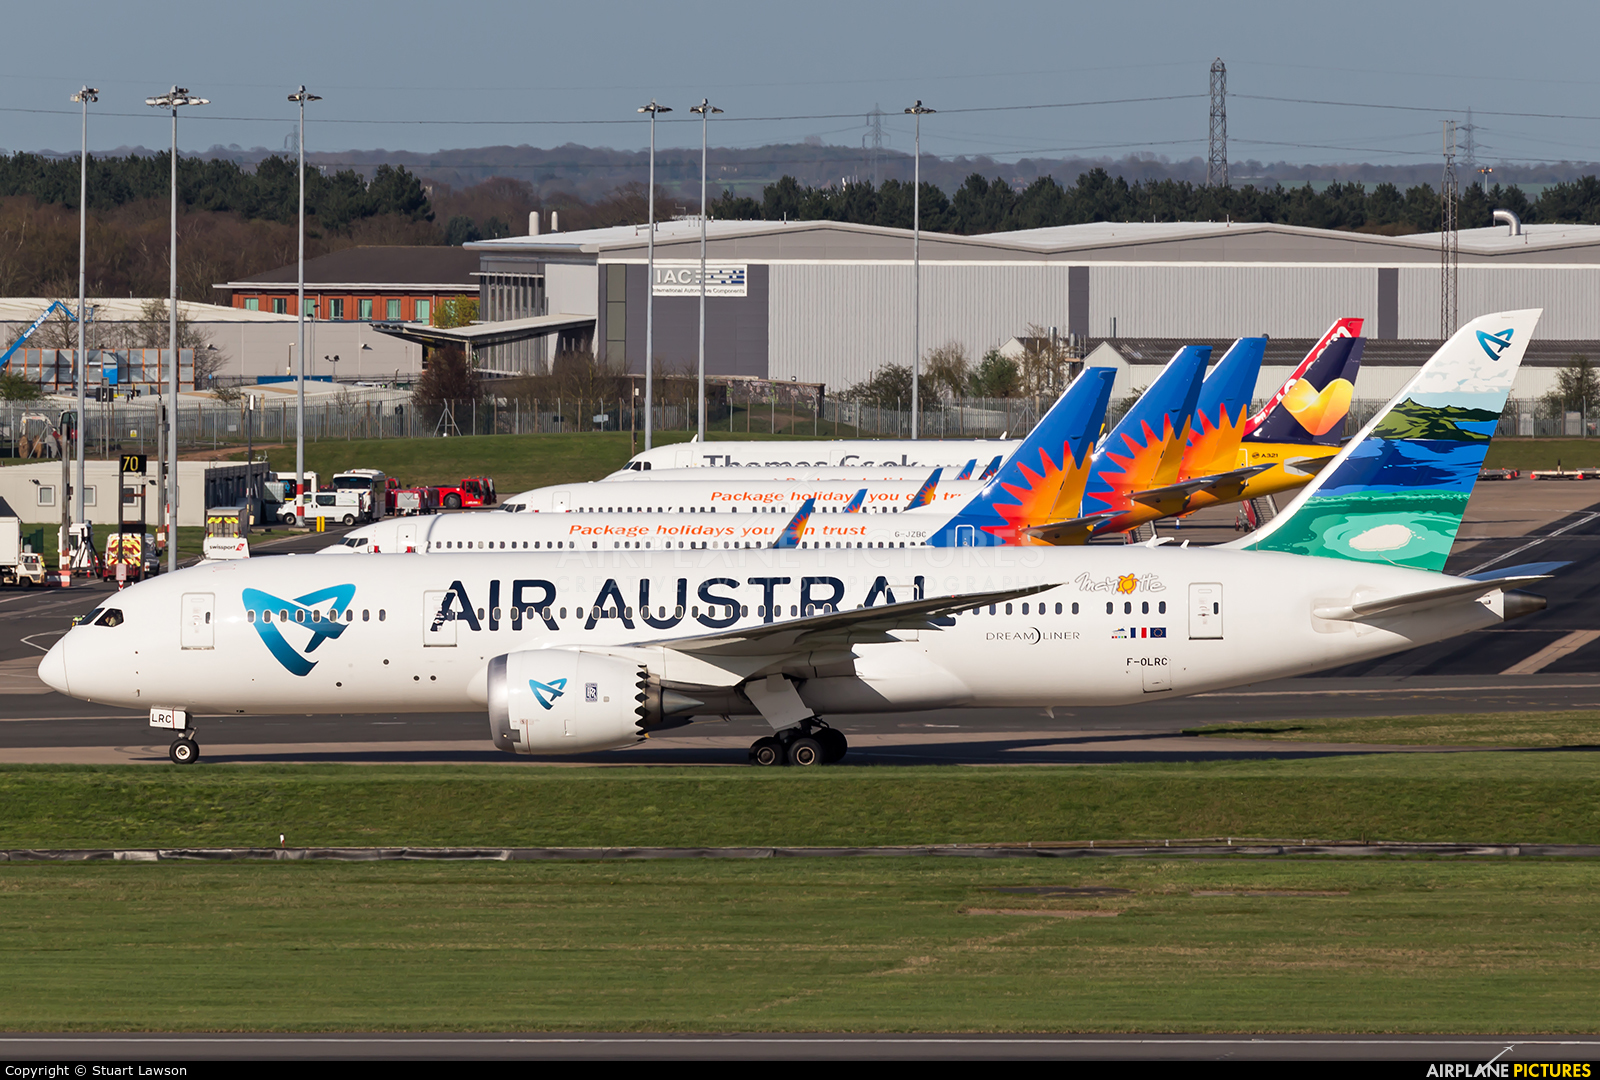 Air Austral F-OLRC aircraft at Birmingham